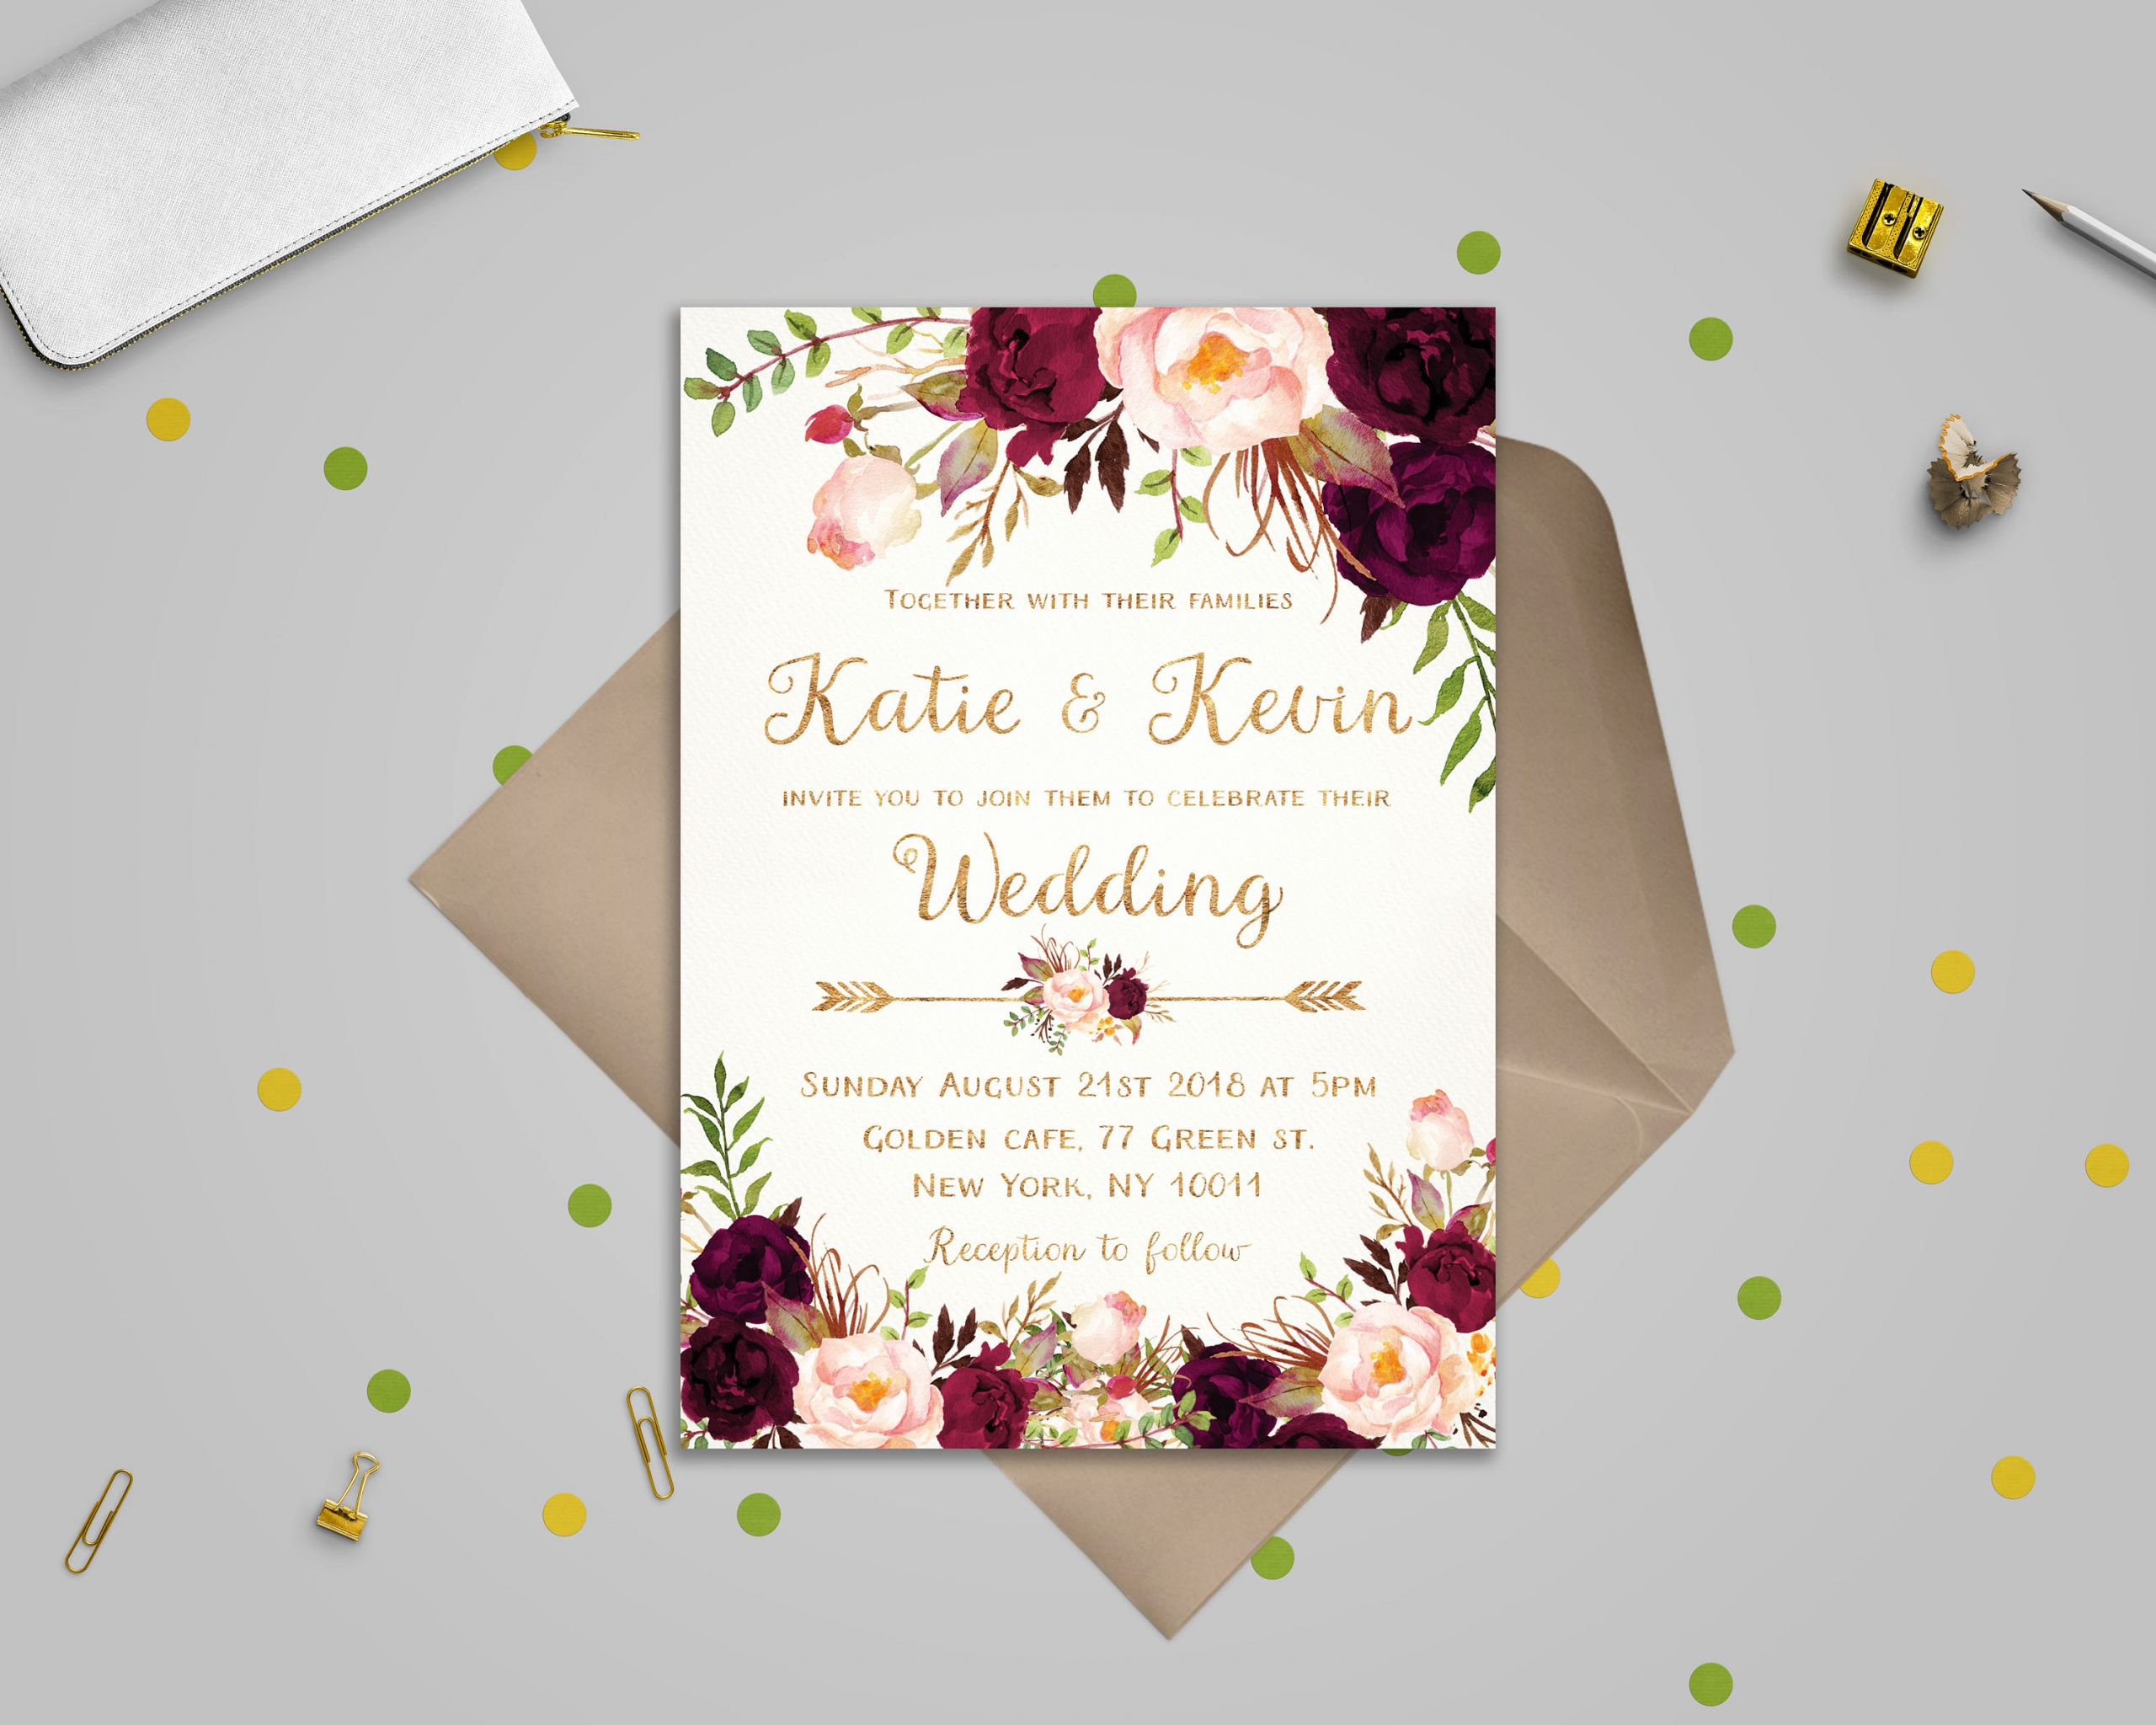 Free Wedding Invitation Template Fresh Floral Wedding Invitation Template Wedding Invitation